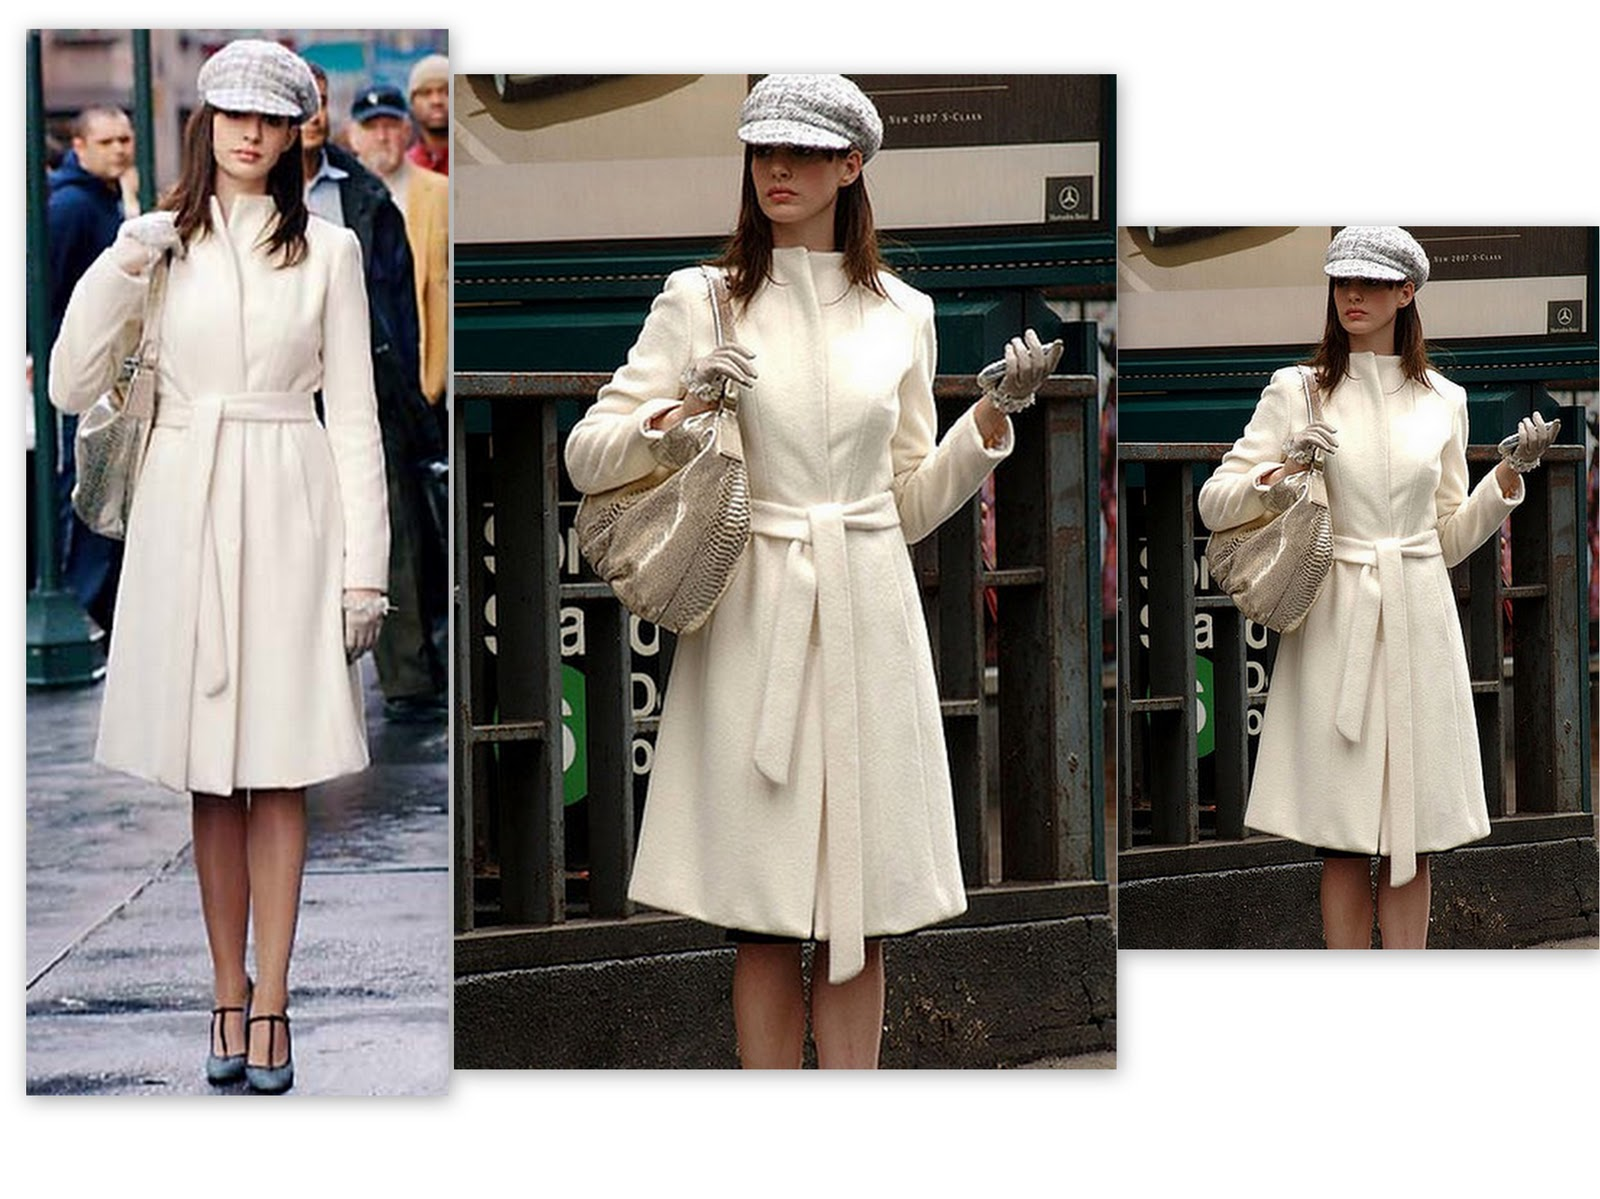 Style-Delights: Longing For a Winter White Wool Coat